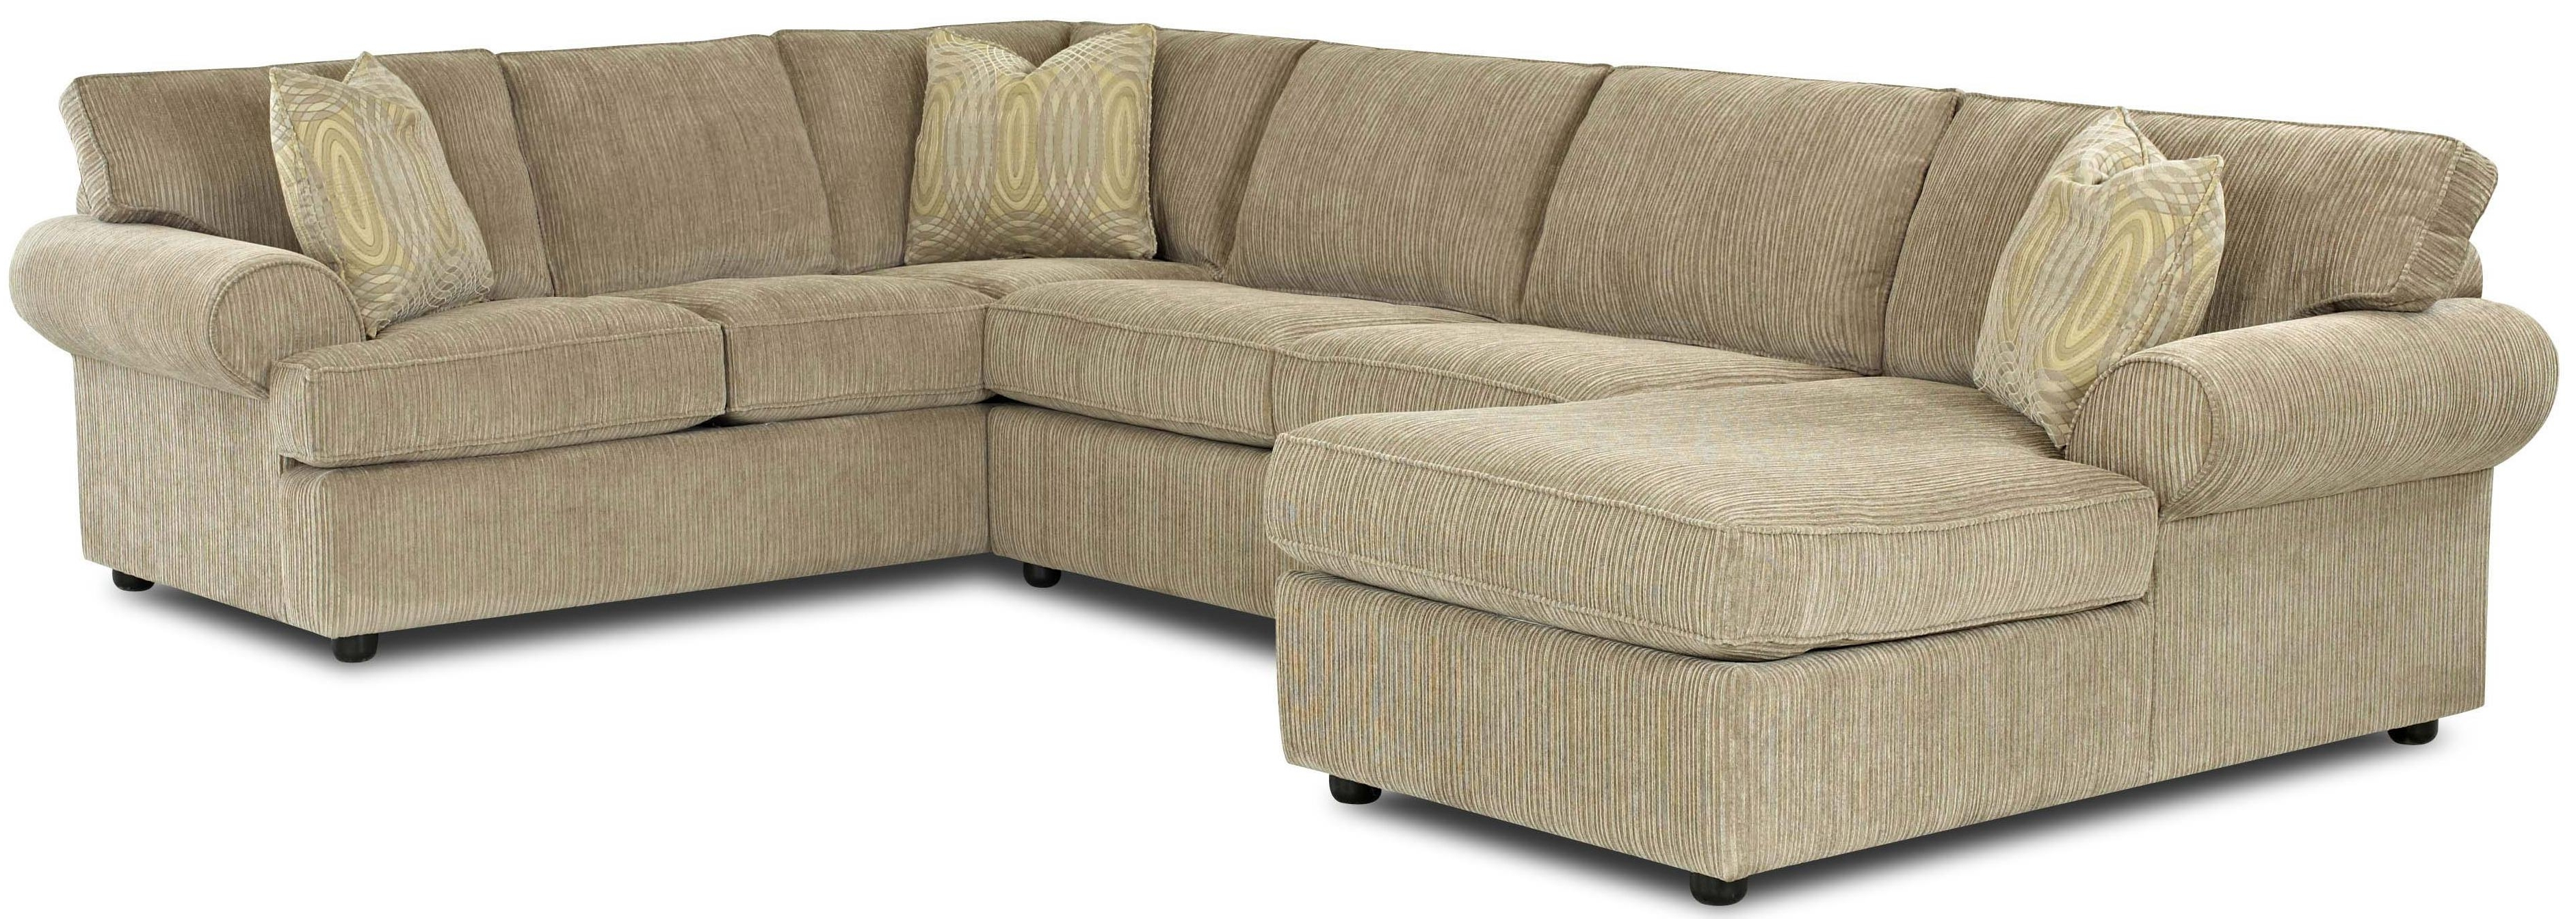 Klaussner Julington Transitional Sectional Sofa With Rolled Arms Within 2019 Eugene Oregon Sectional Sofas (View 20 of 20)